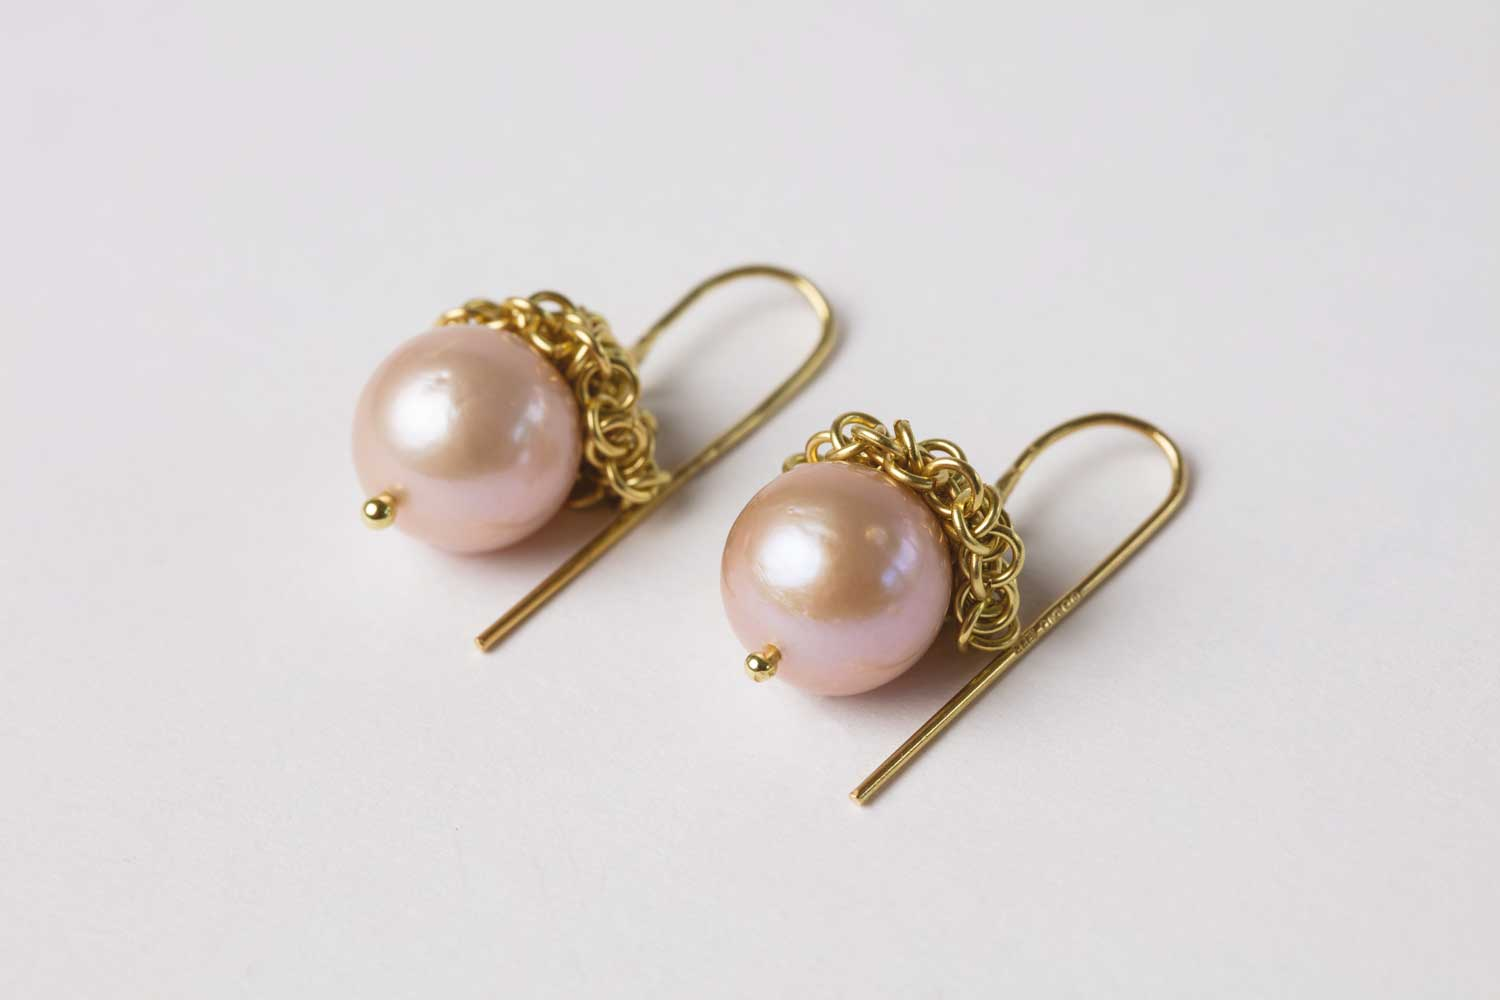 18ct gold and pearl acorn earrings